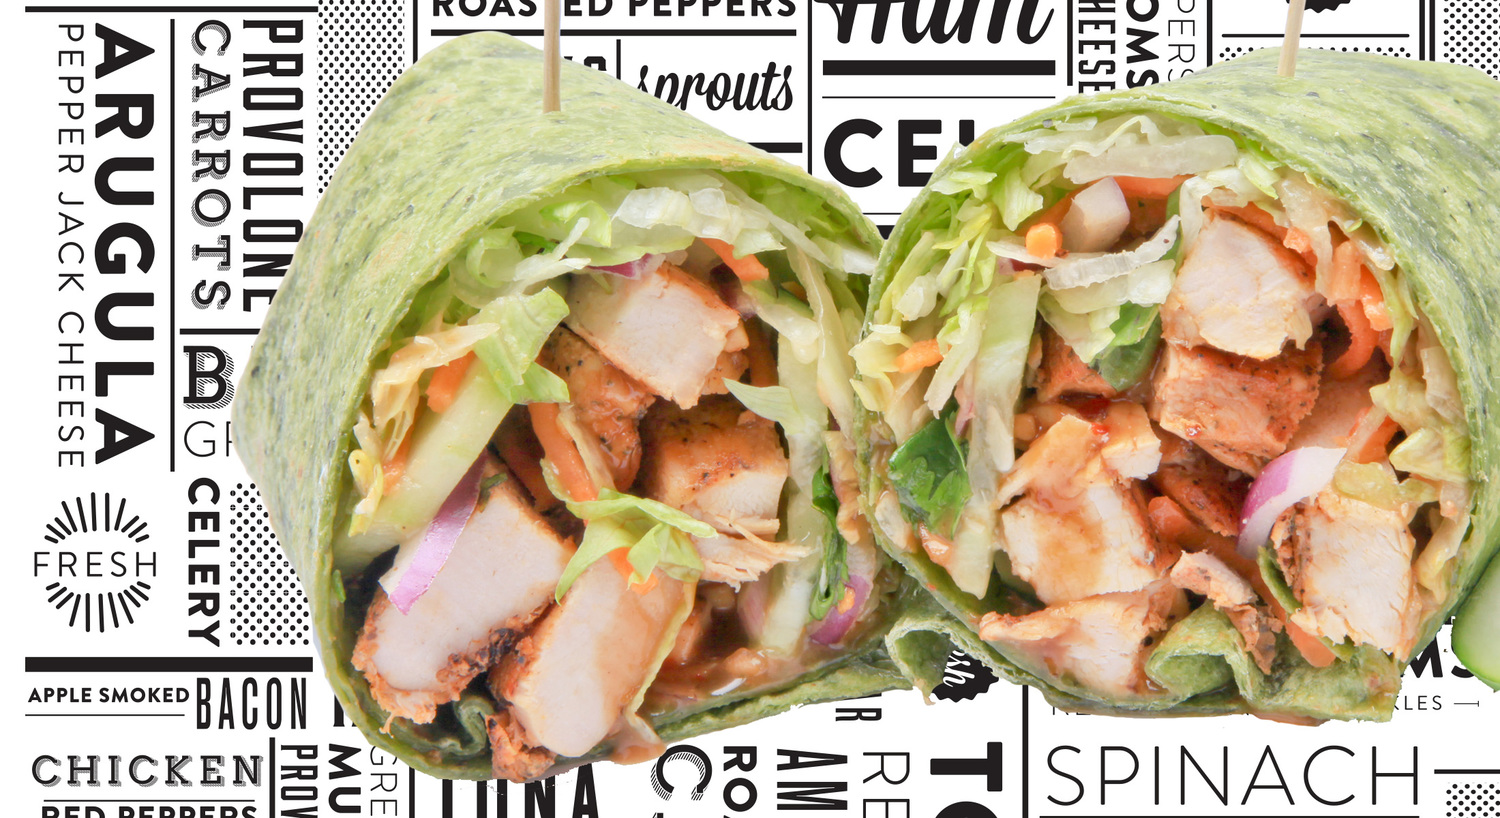 Wraps The Daily Creative Food Co